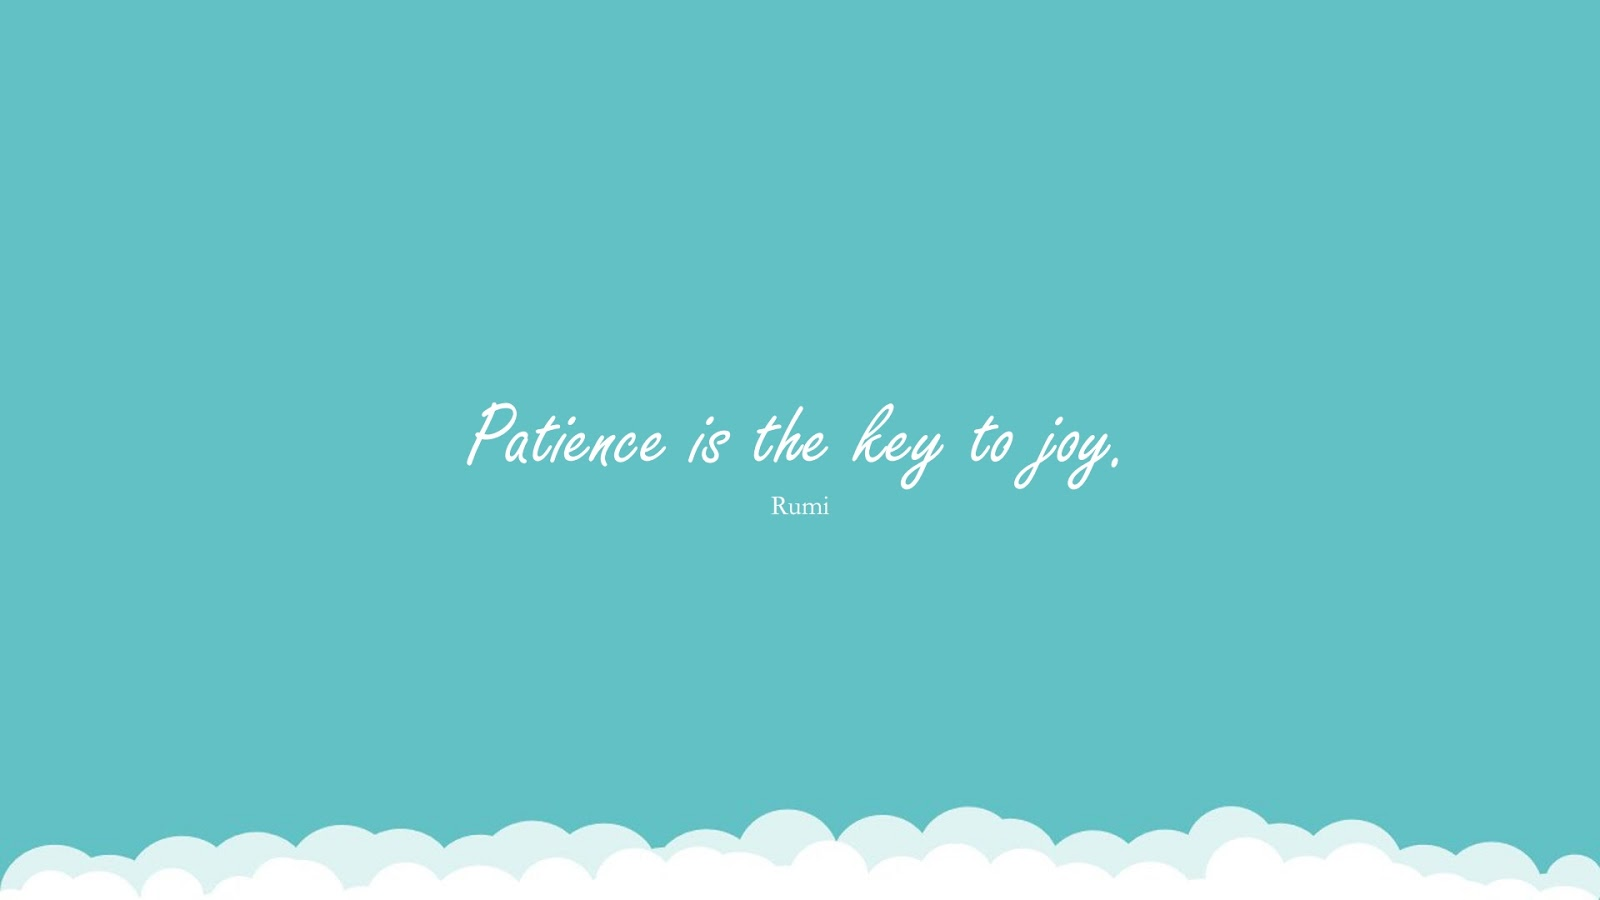 Patience is the key to joy. (Rumi);  #RumiQuotes